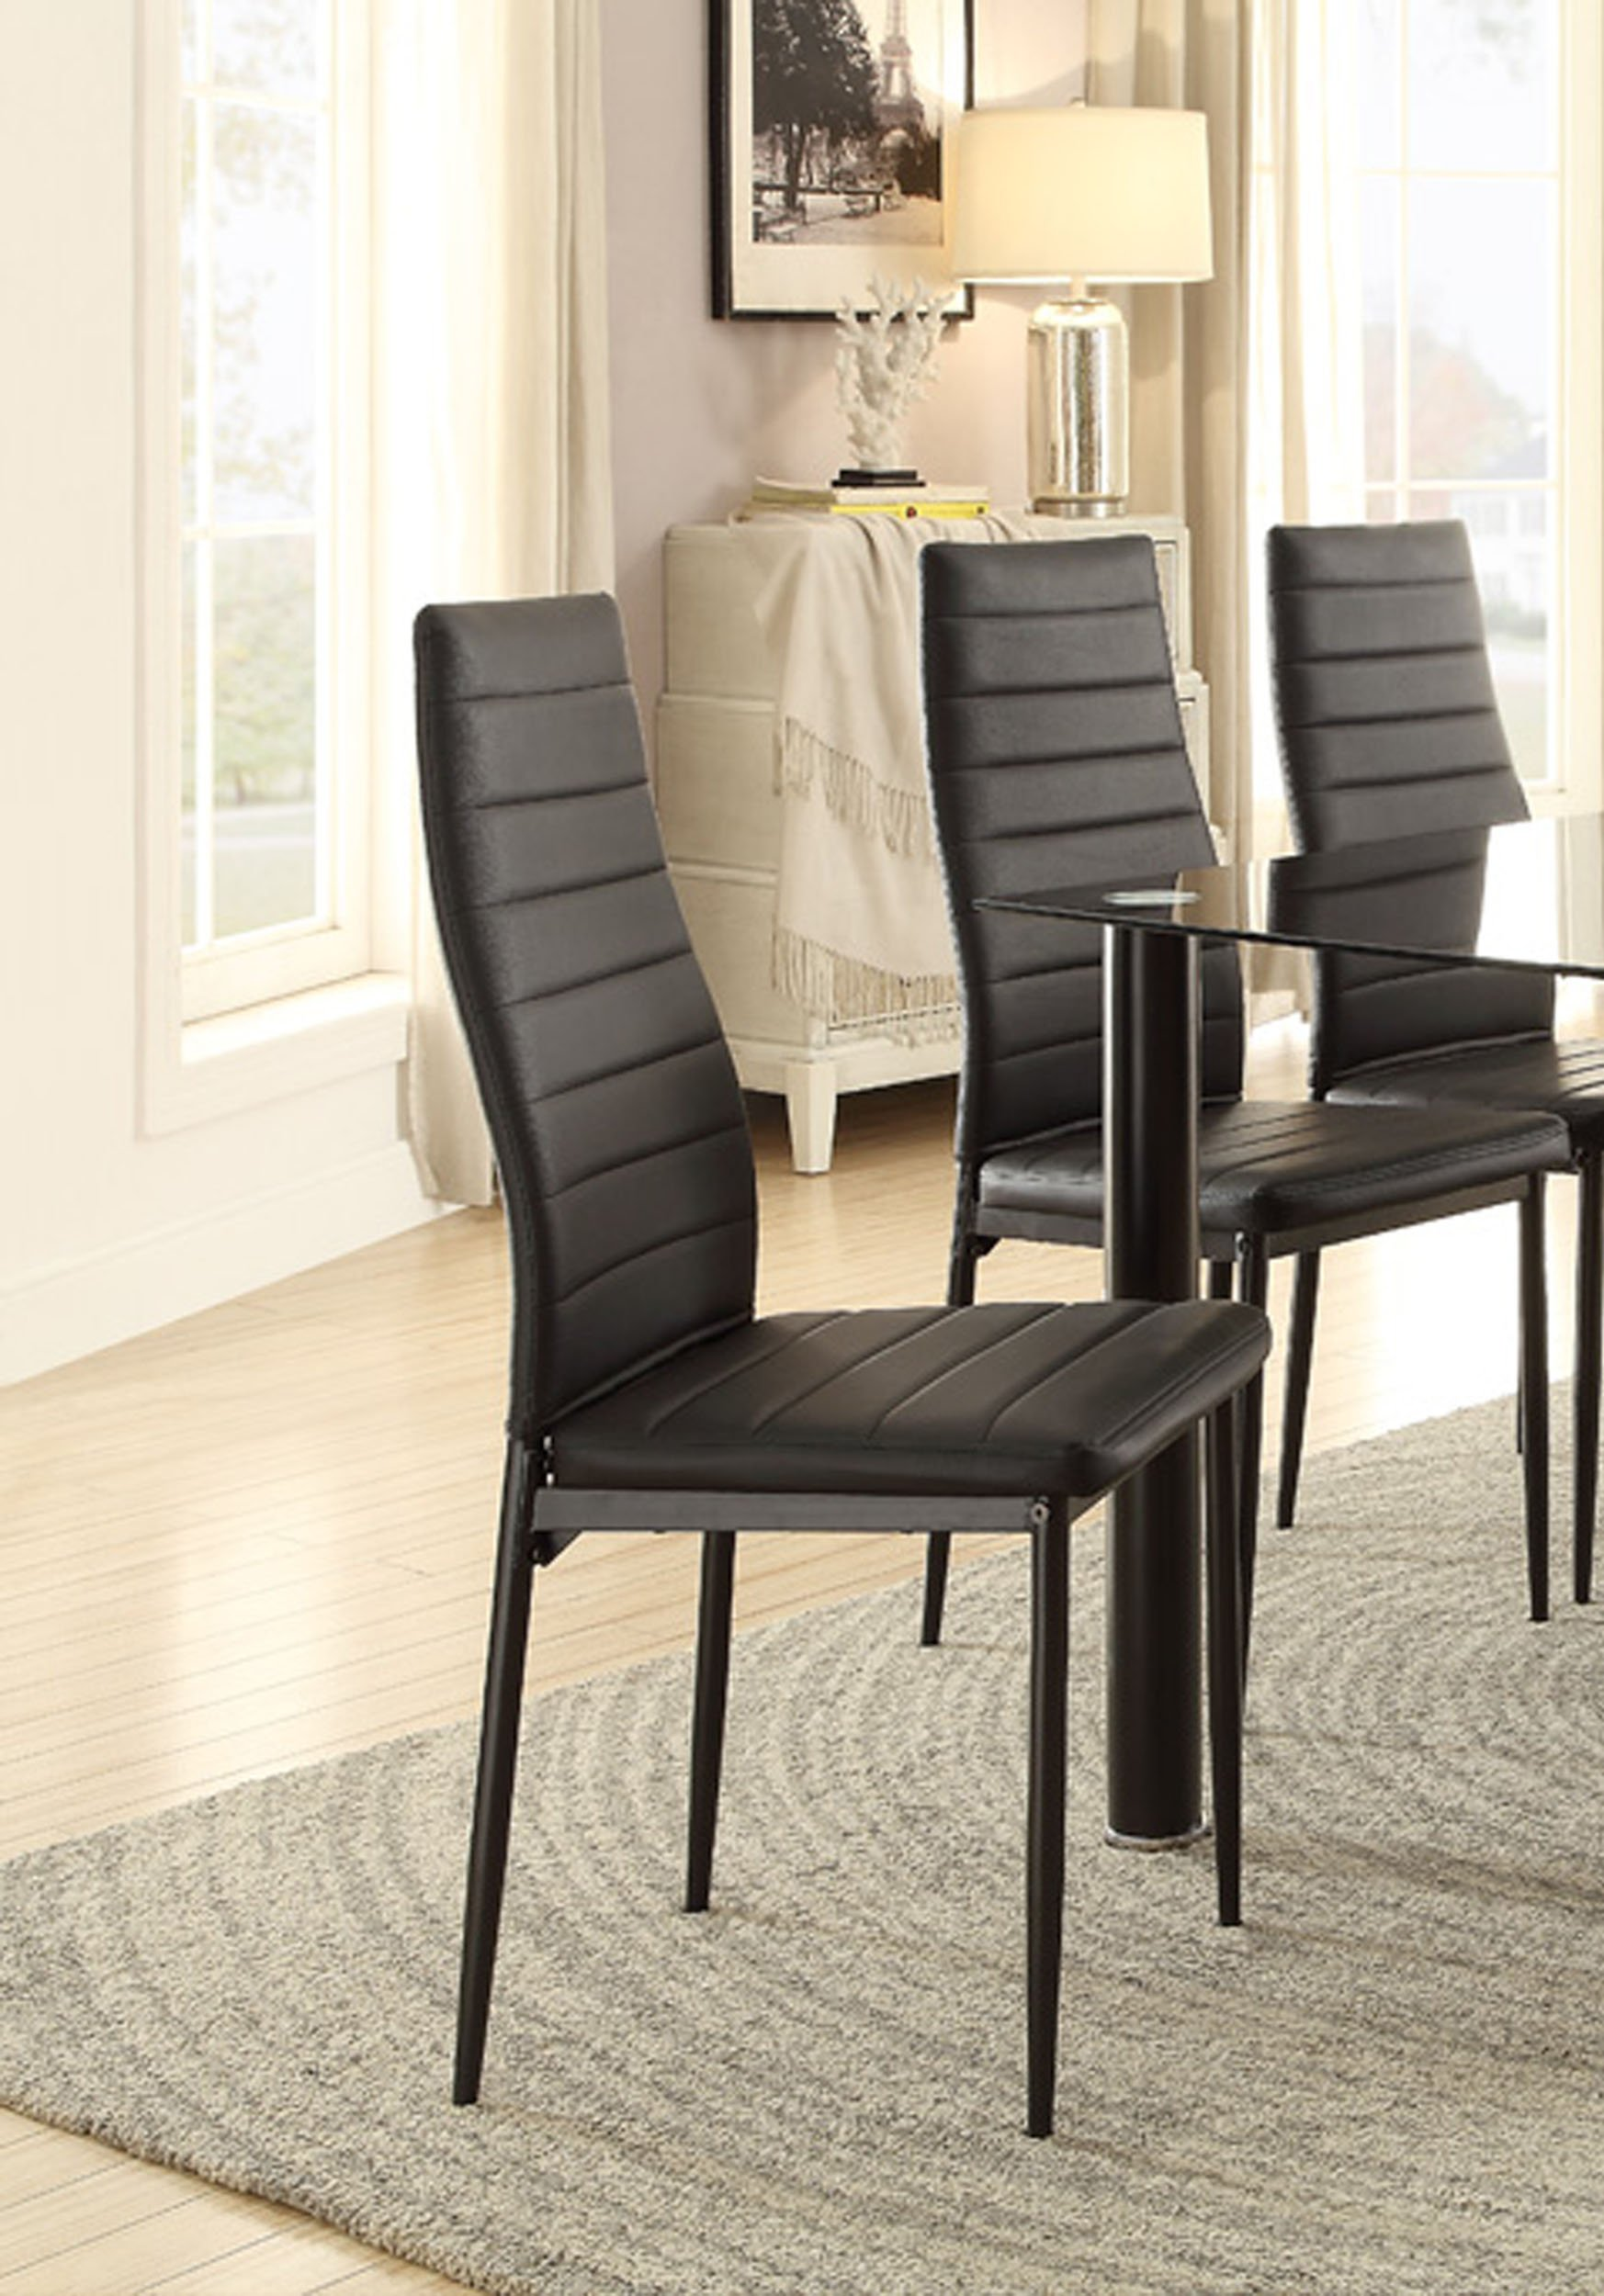 Homelegance Florian Metal Dining Chairs with Bi-Cast Vinyl Back and Seat Cover (Set of 2), Black by Homelegance (Image #2)